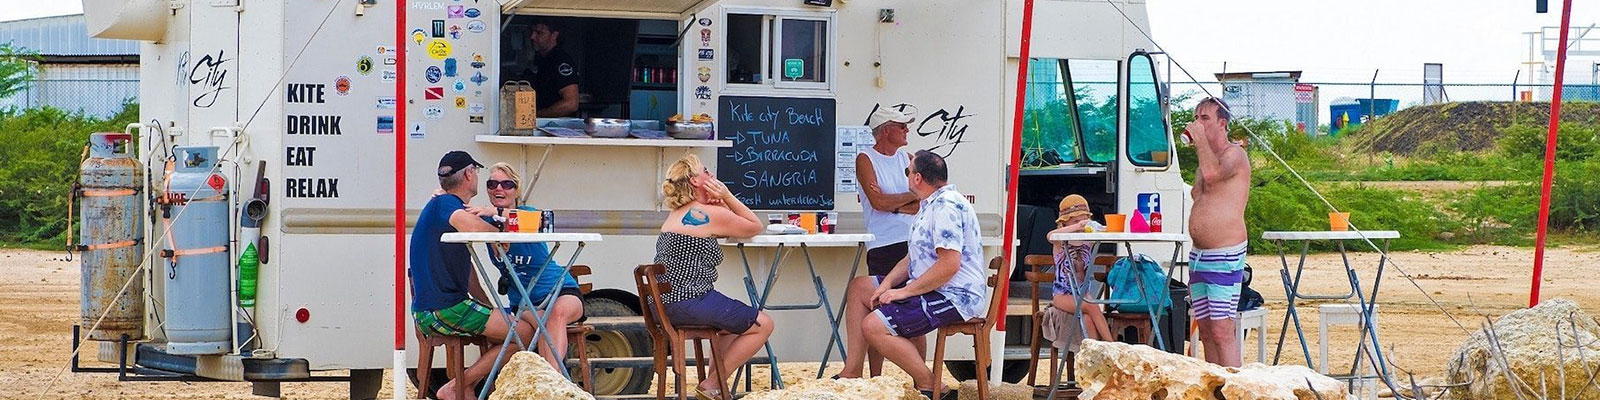 kite-city-food-truck-bonaire-image-slider-2